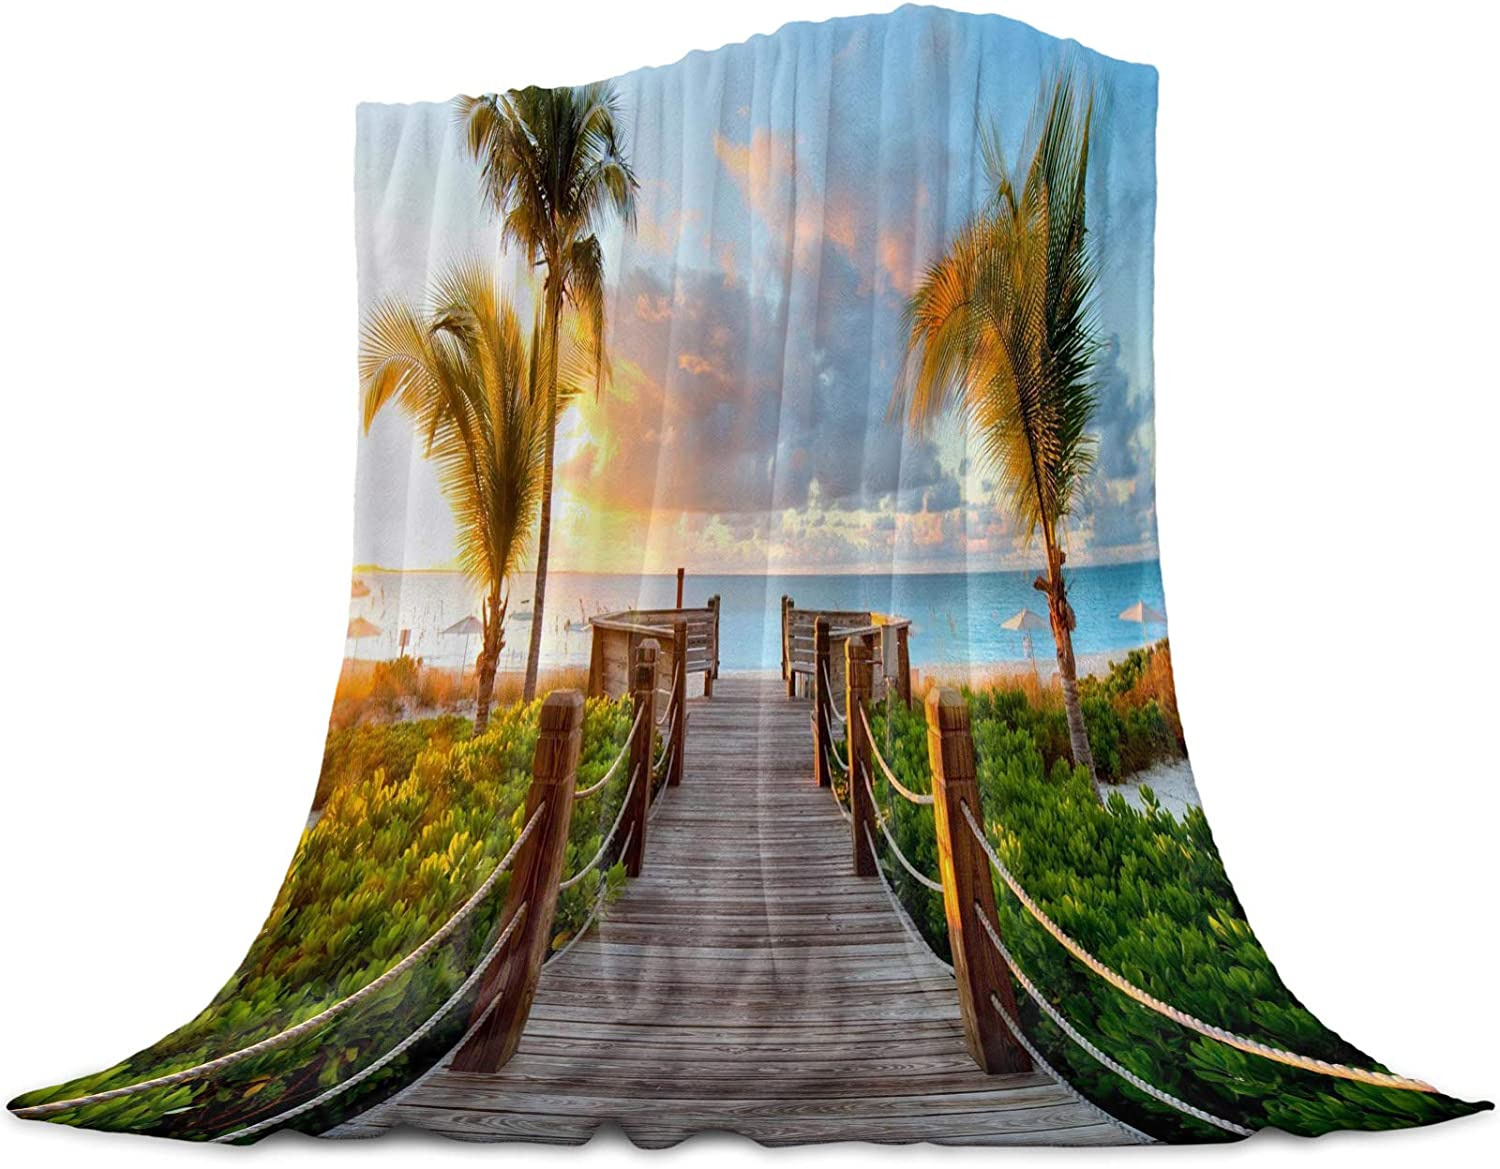 Throw Blanket for Bed Couch Seasonal Wrap Introduction 59 79 Retro Inche Alternative dealer x Seaside Tropical